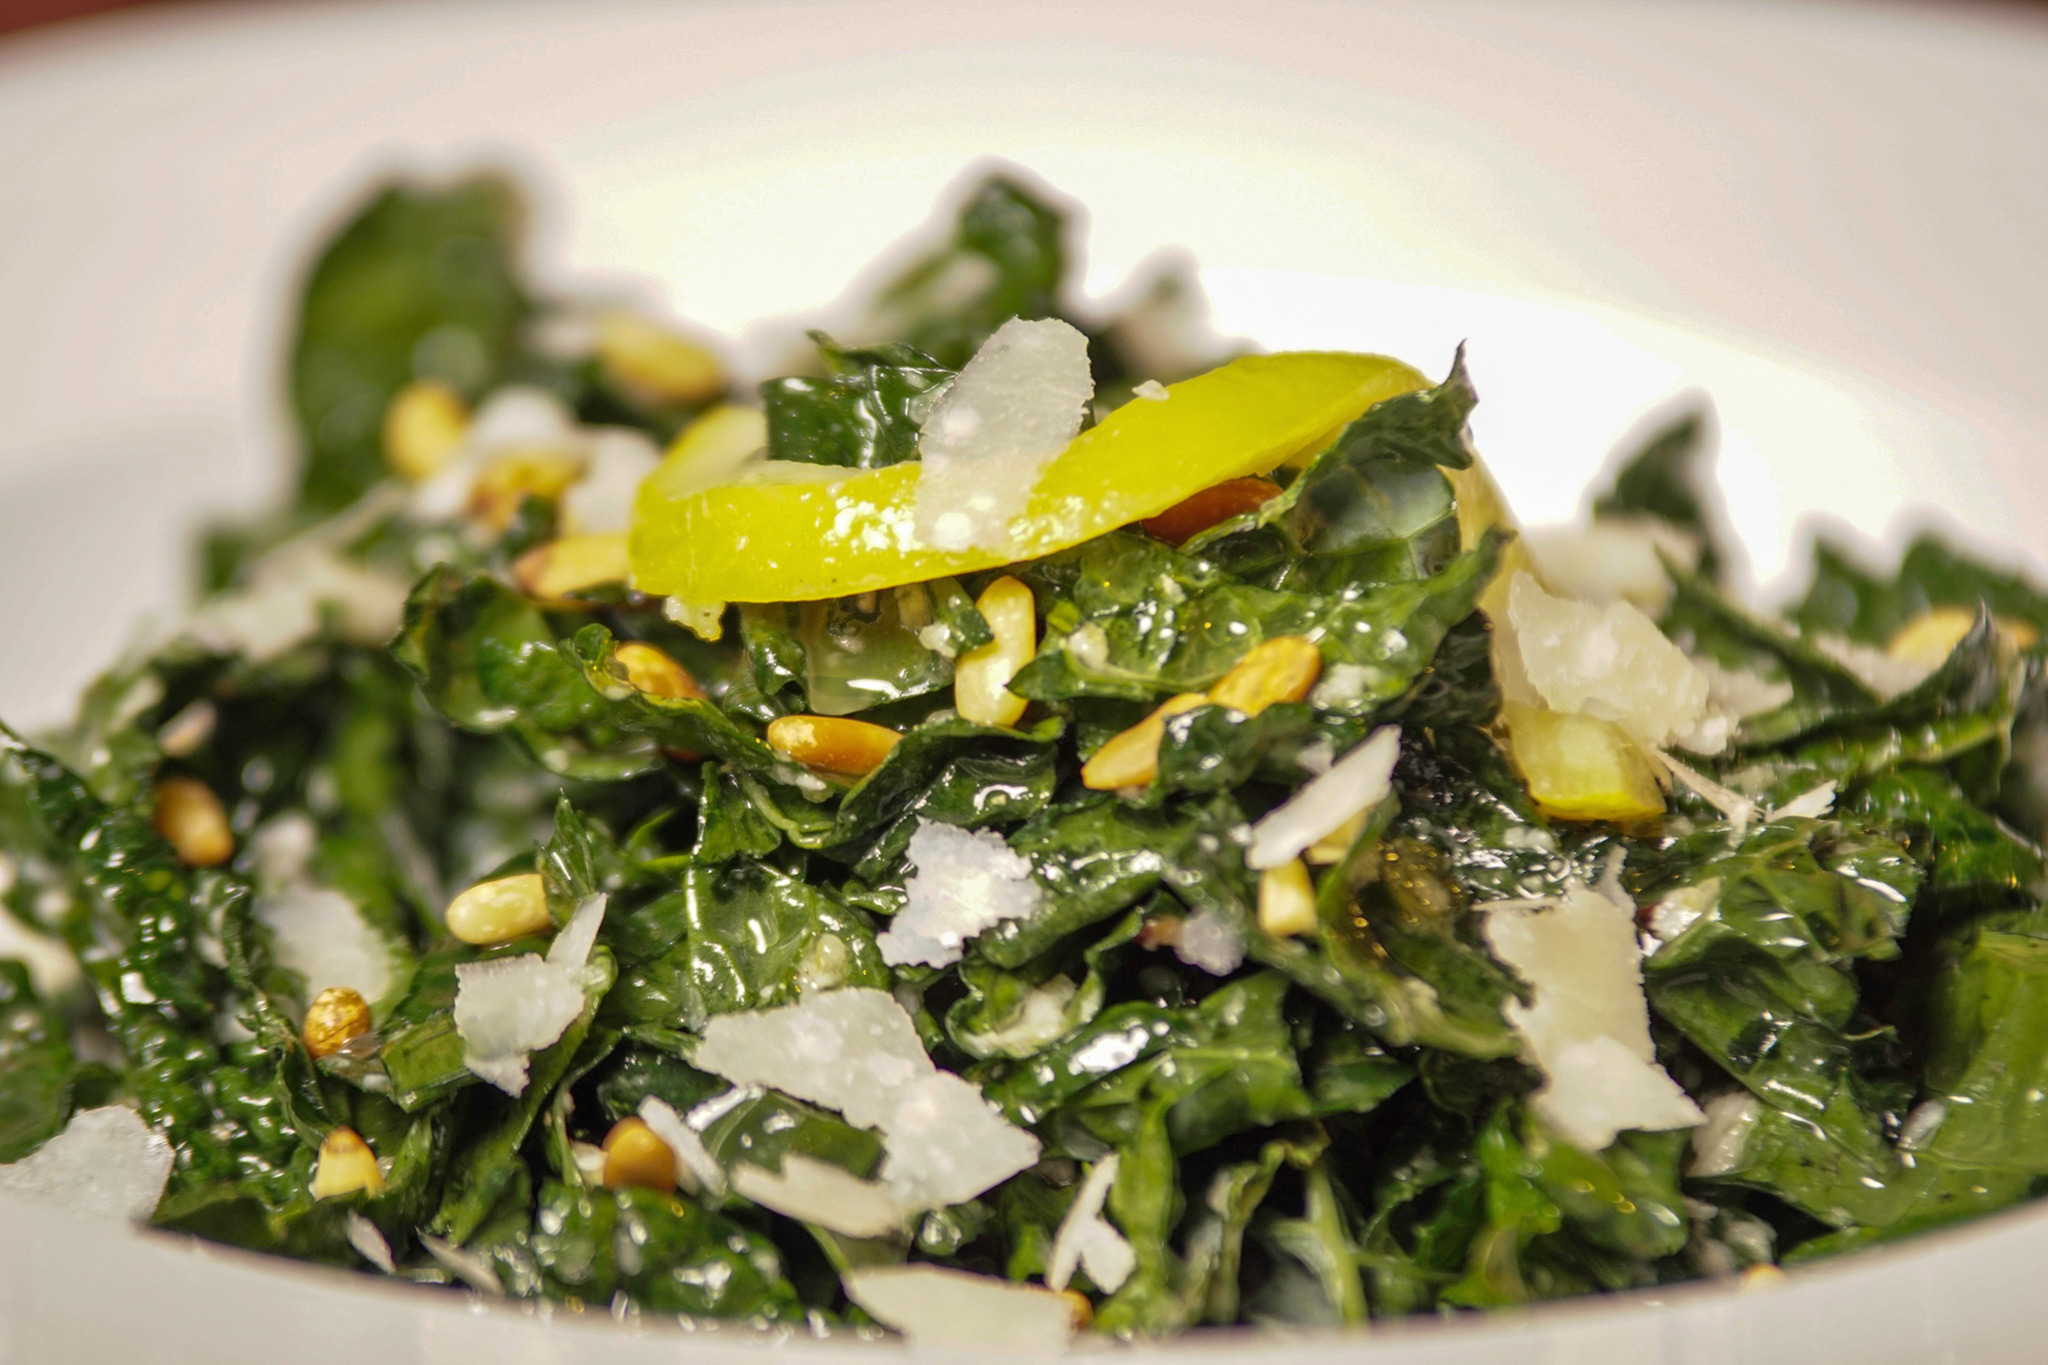 Kale Salad - preserved lemon, parmesan, pine nuts